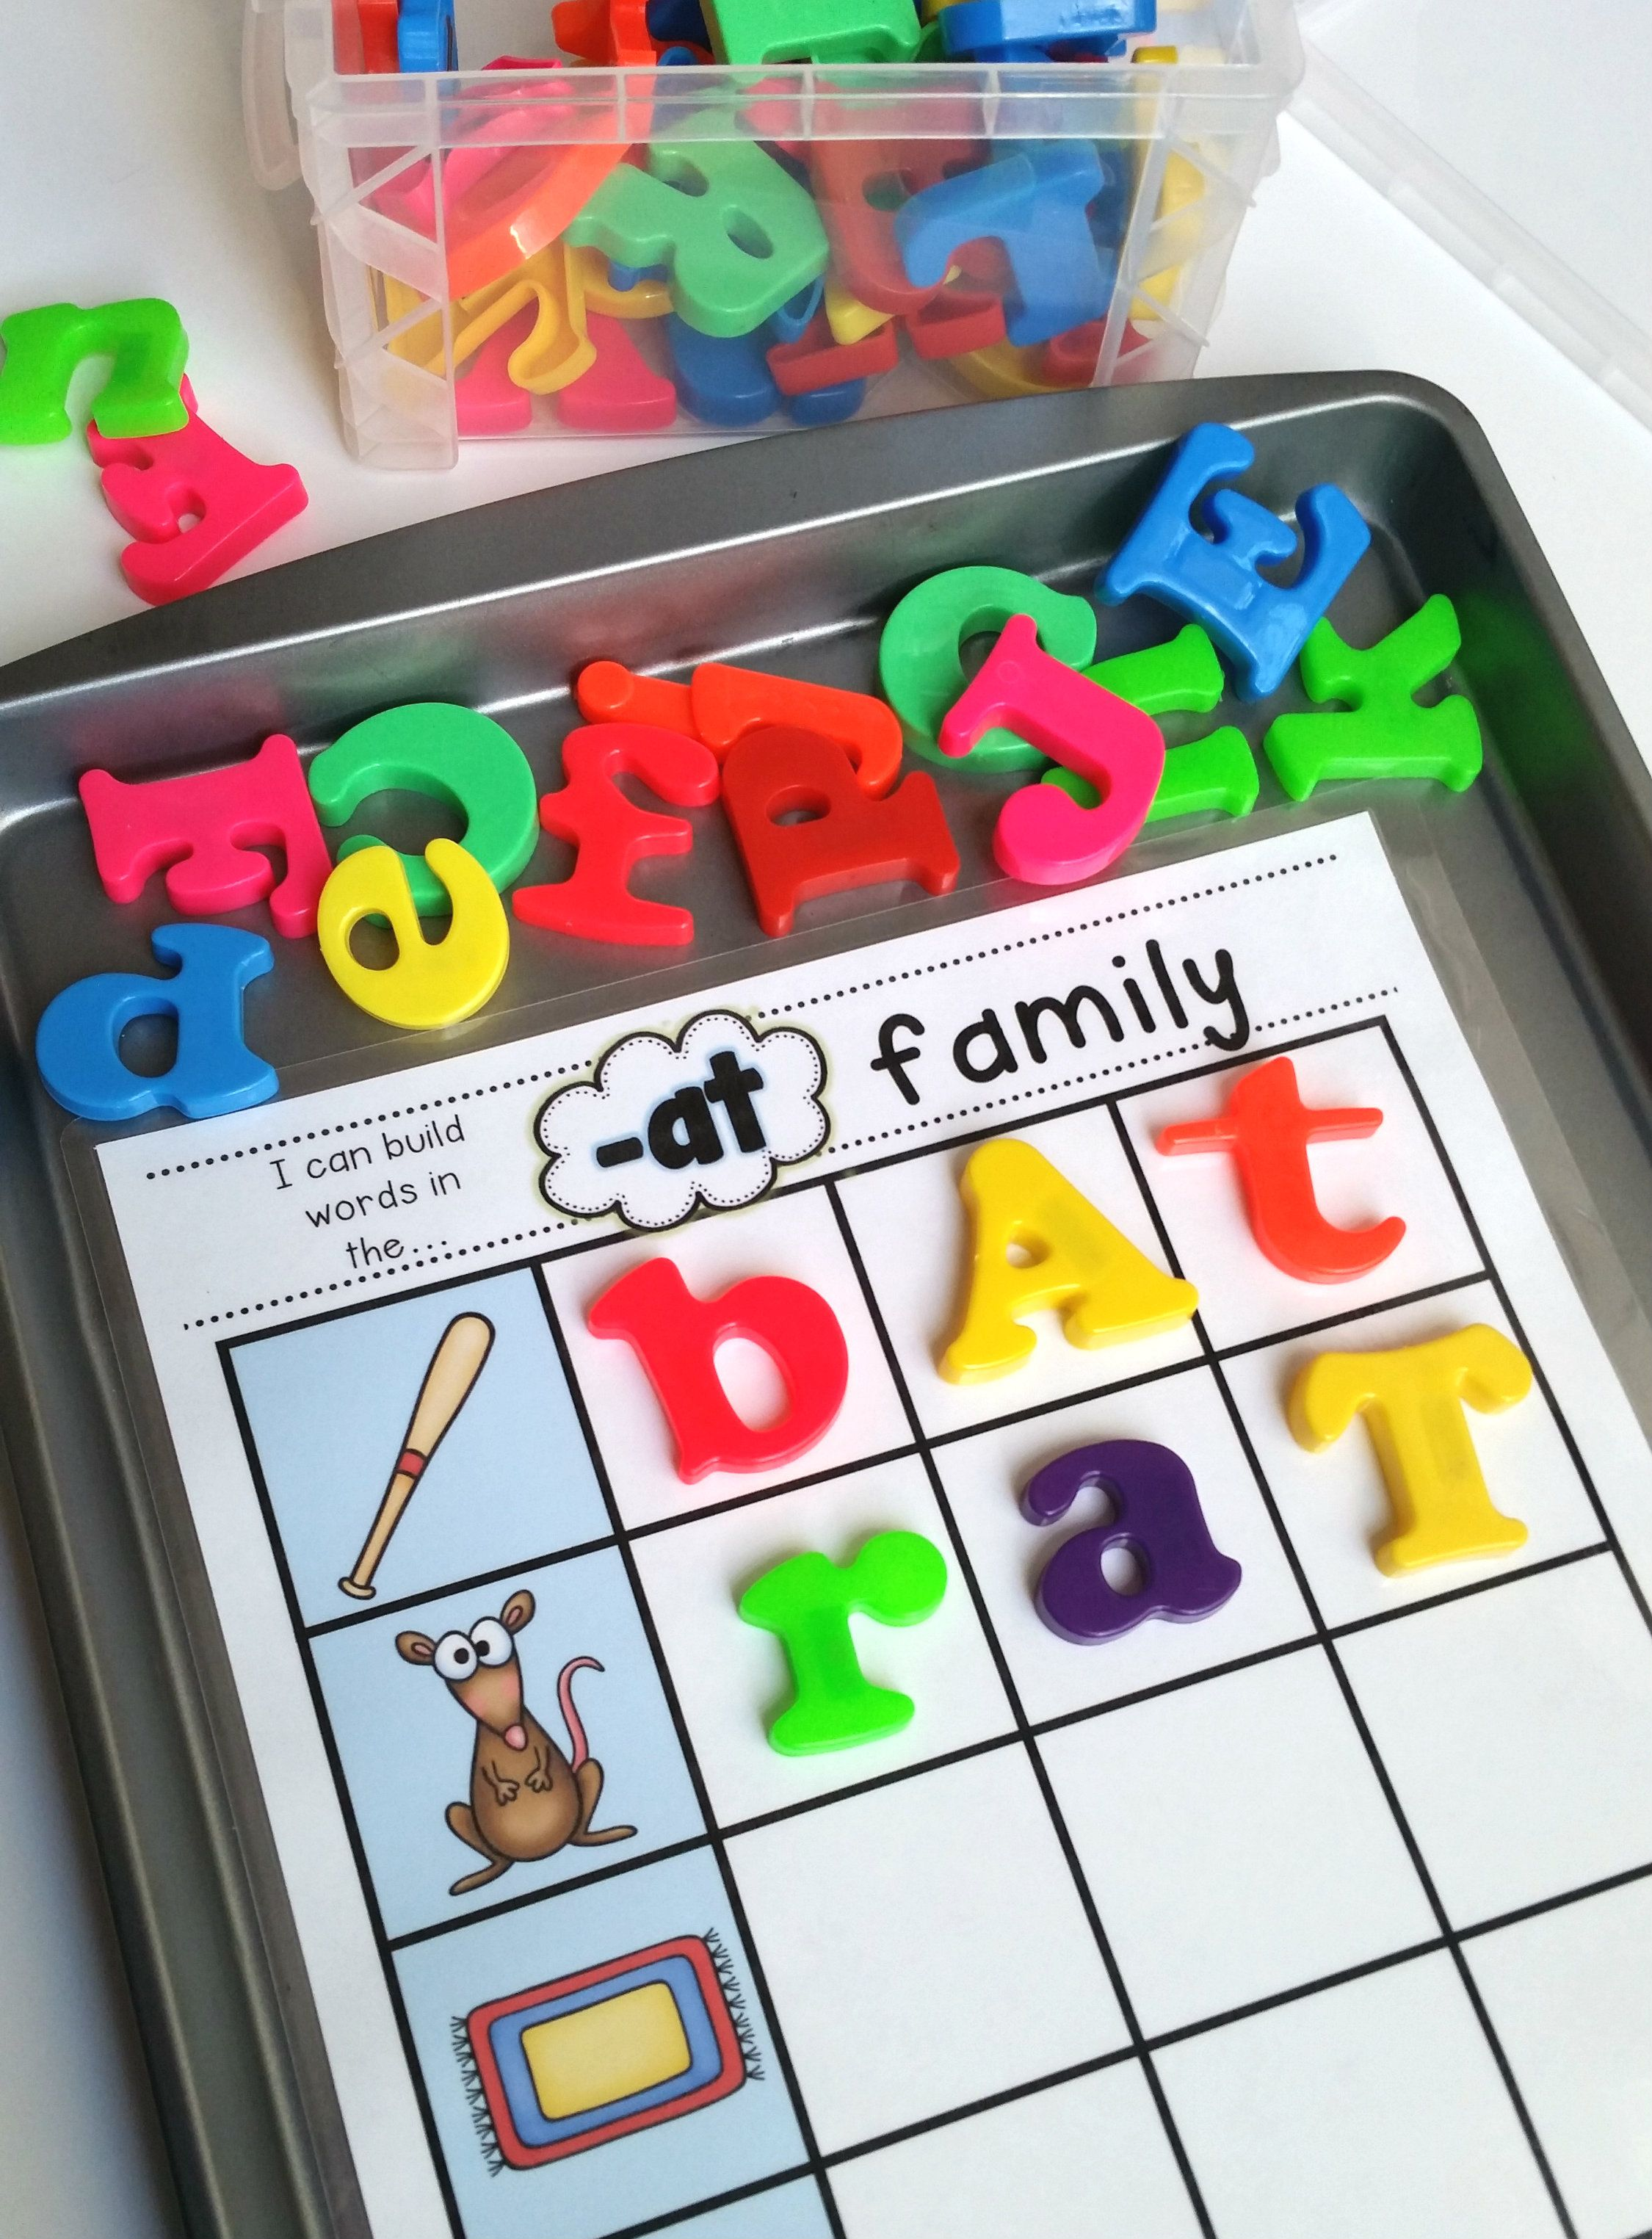 Building Cvc Words Students Use Magnetic Letters Or Dry Erase Markers To Build Words In Word